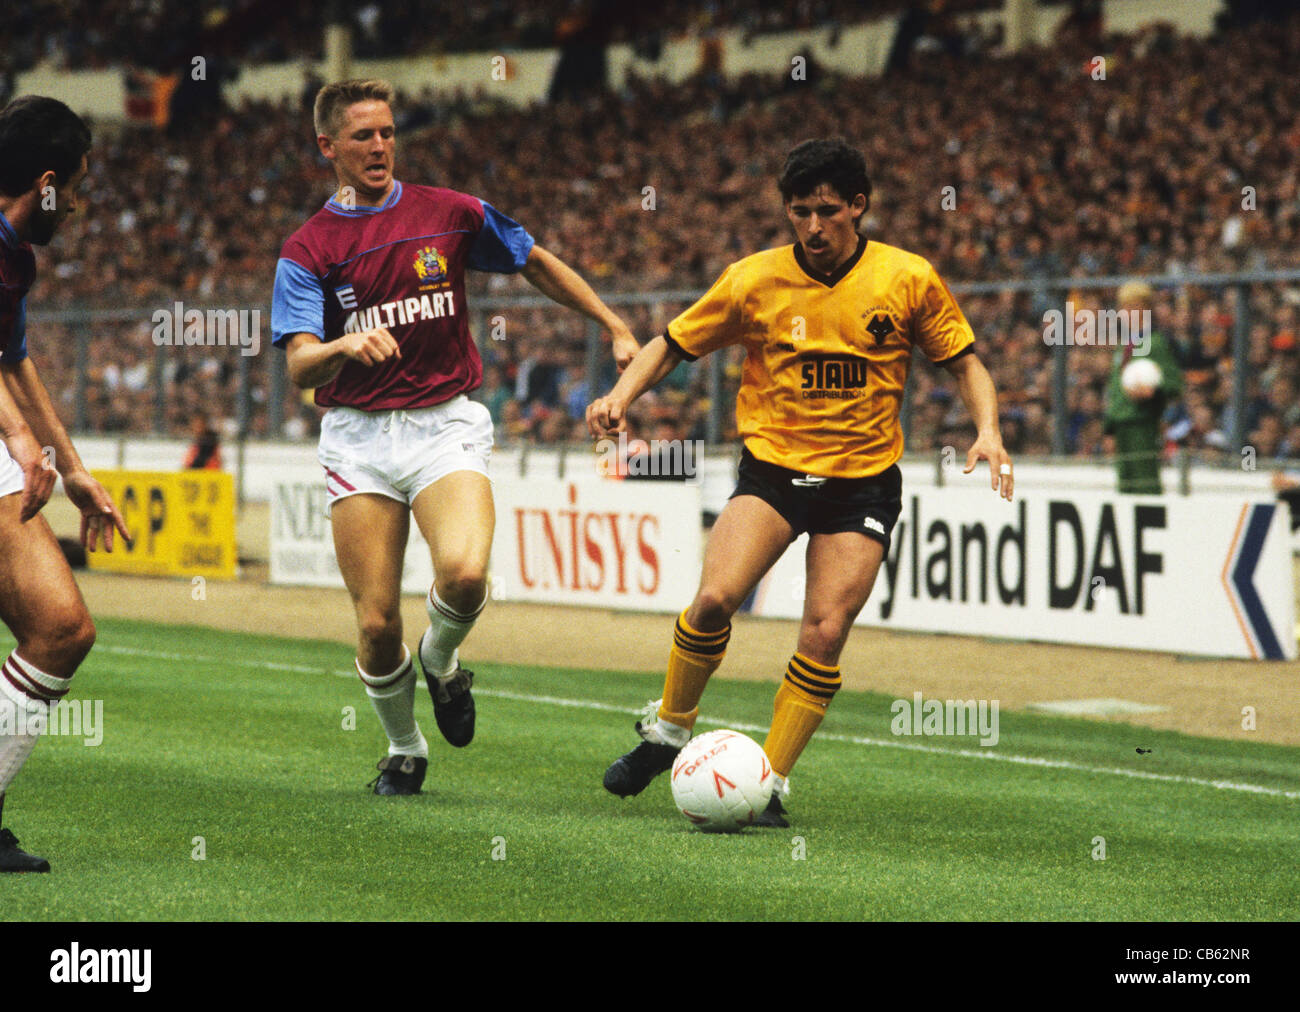 The 1988 Sherpa Van Trophy Final at Wembley Wolverhampton Wanderers V Burnley Andy Thompson - Stock Image